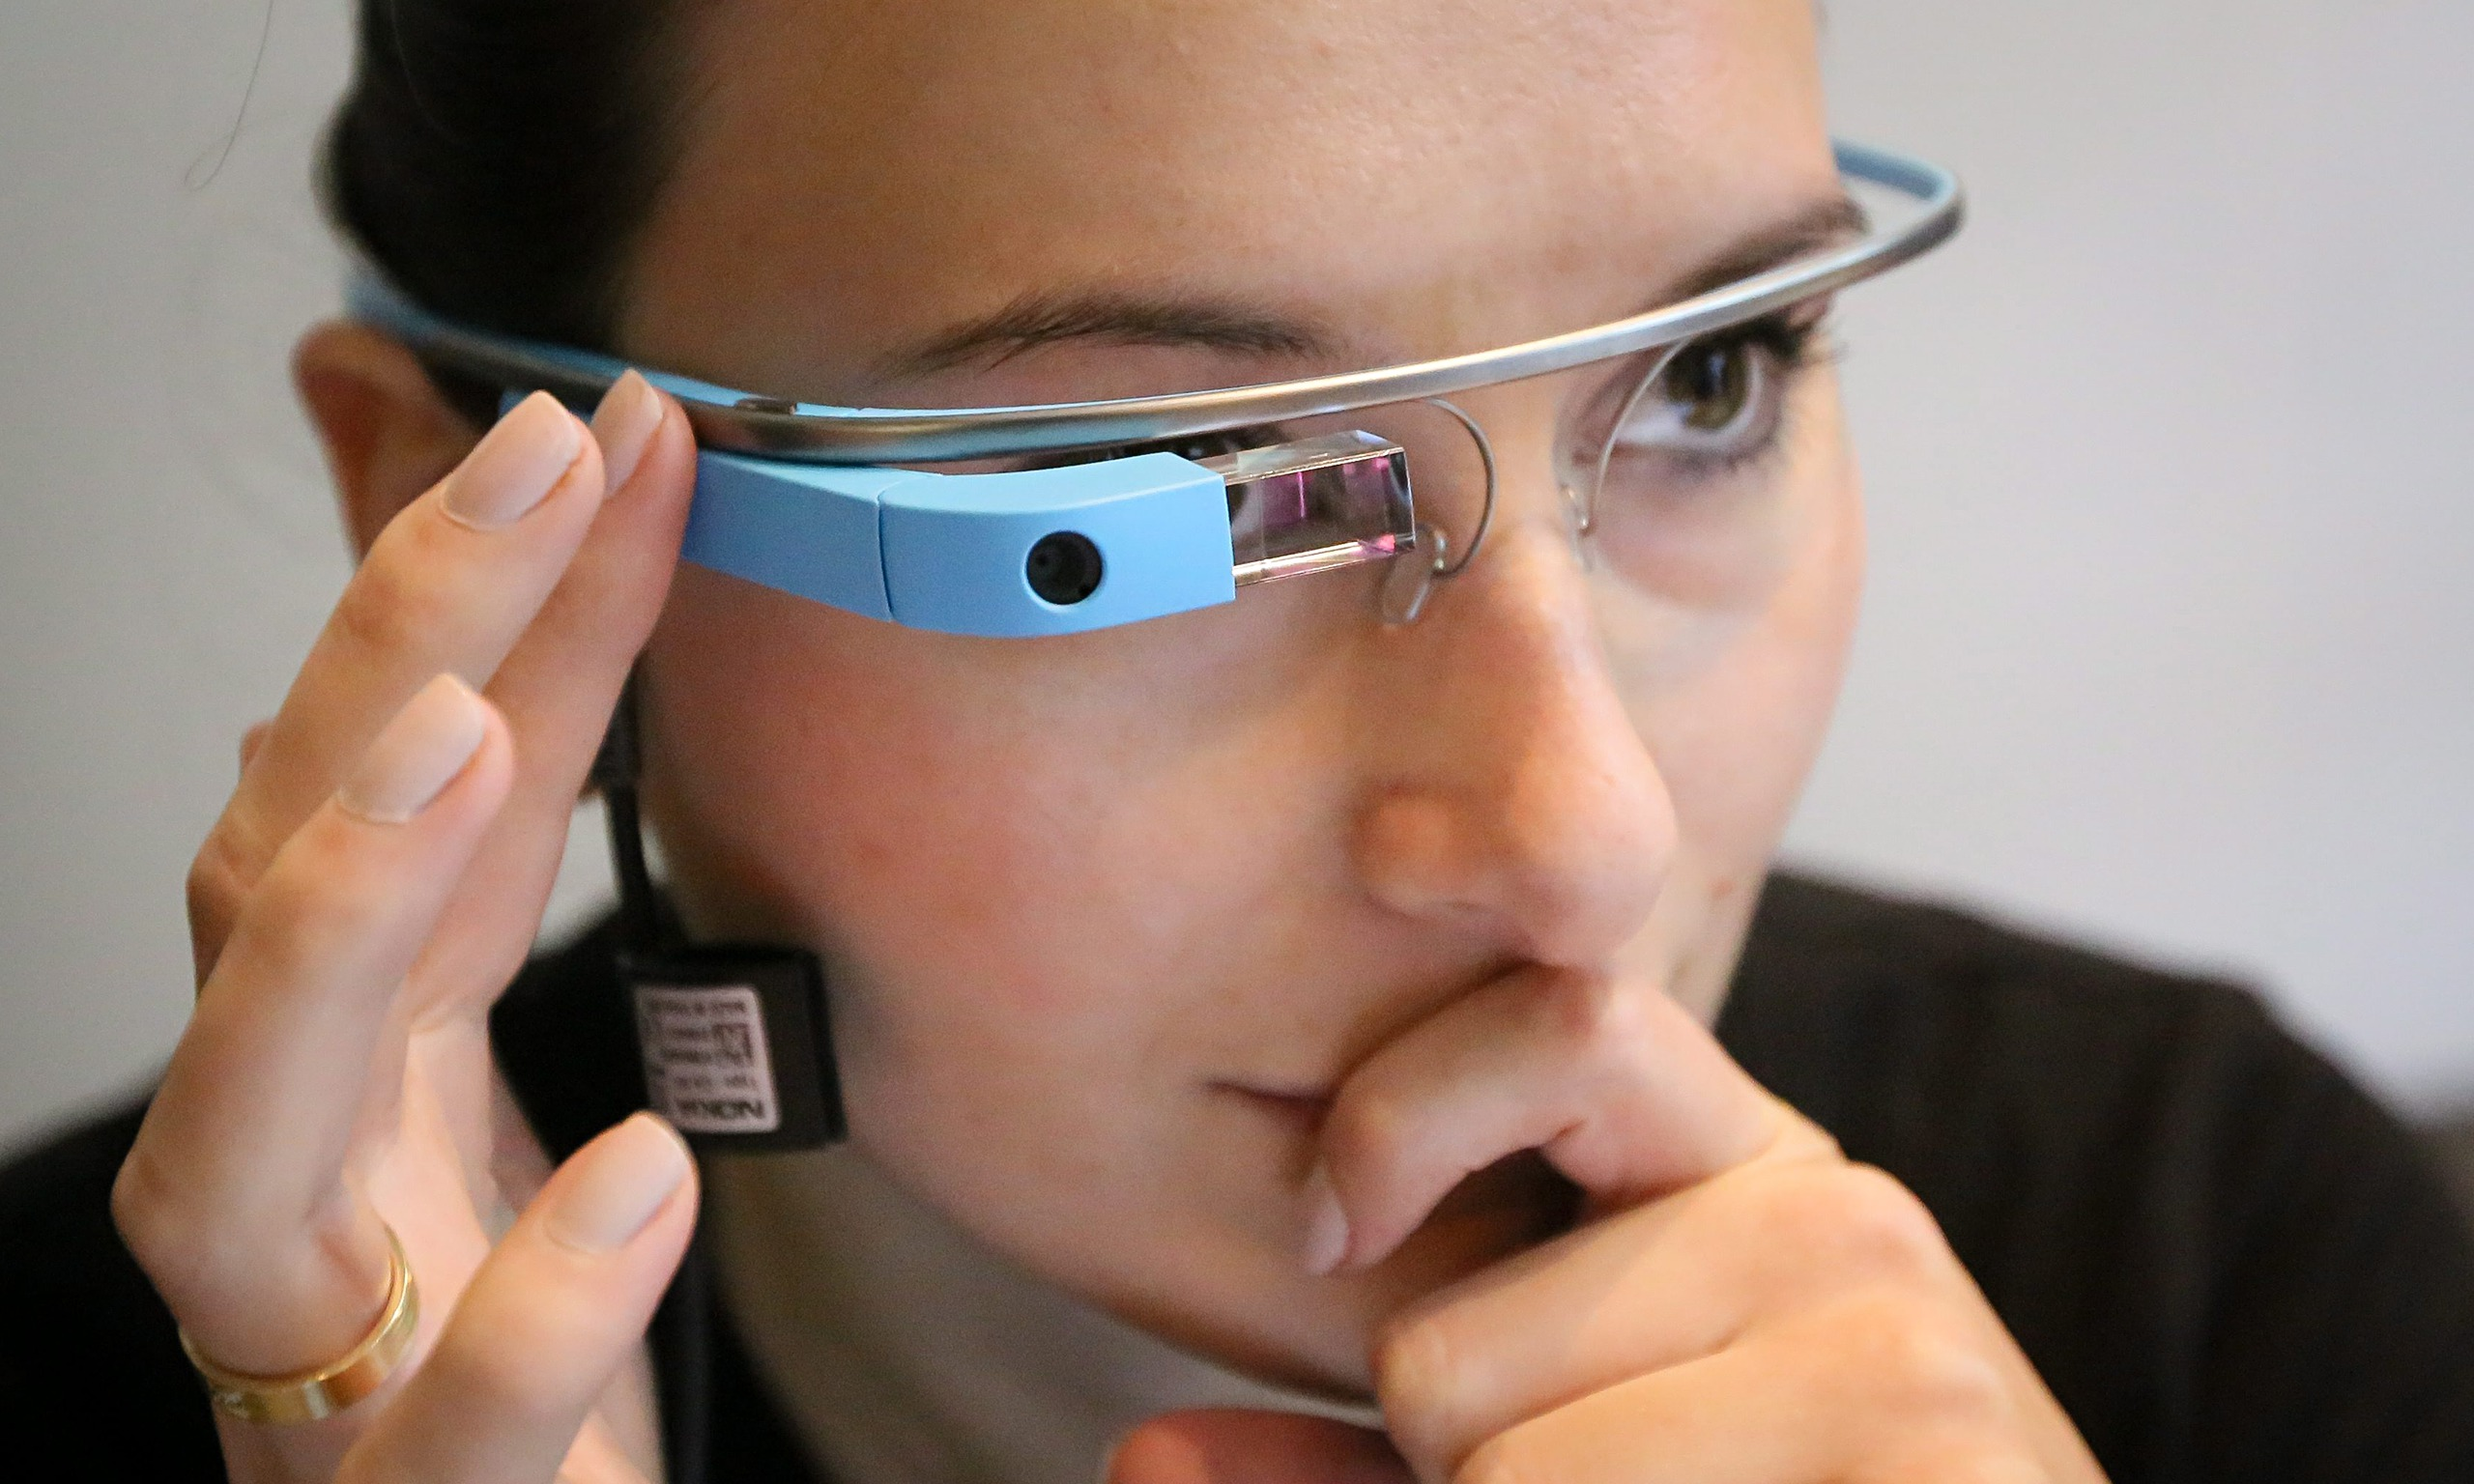 Smartwatches and Google Glass in - 636.8KB